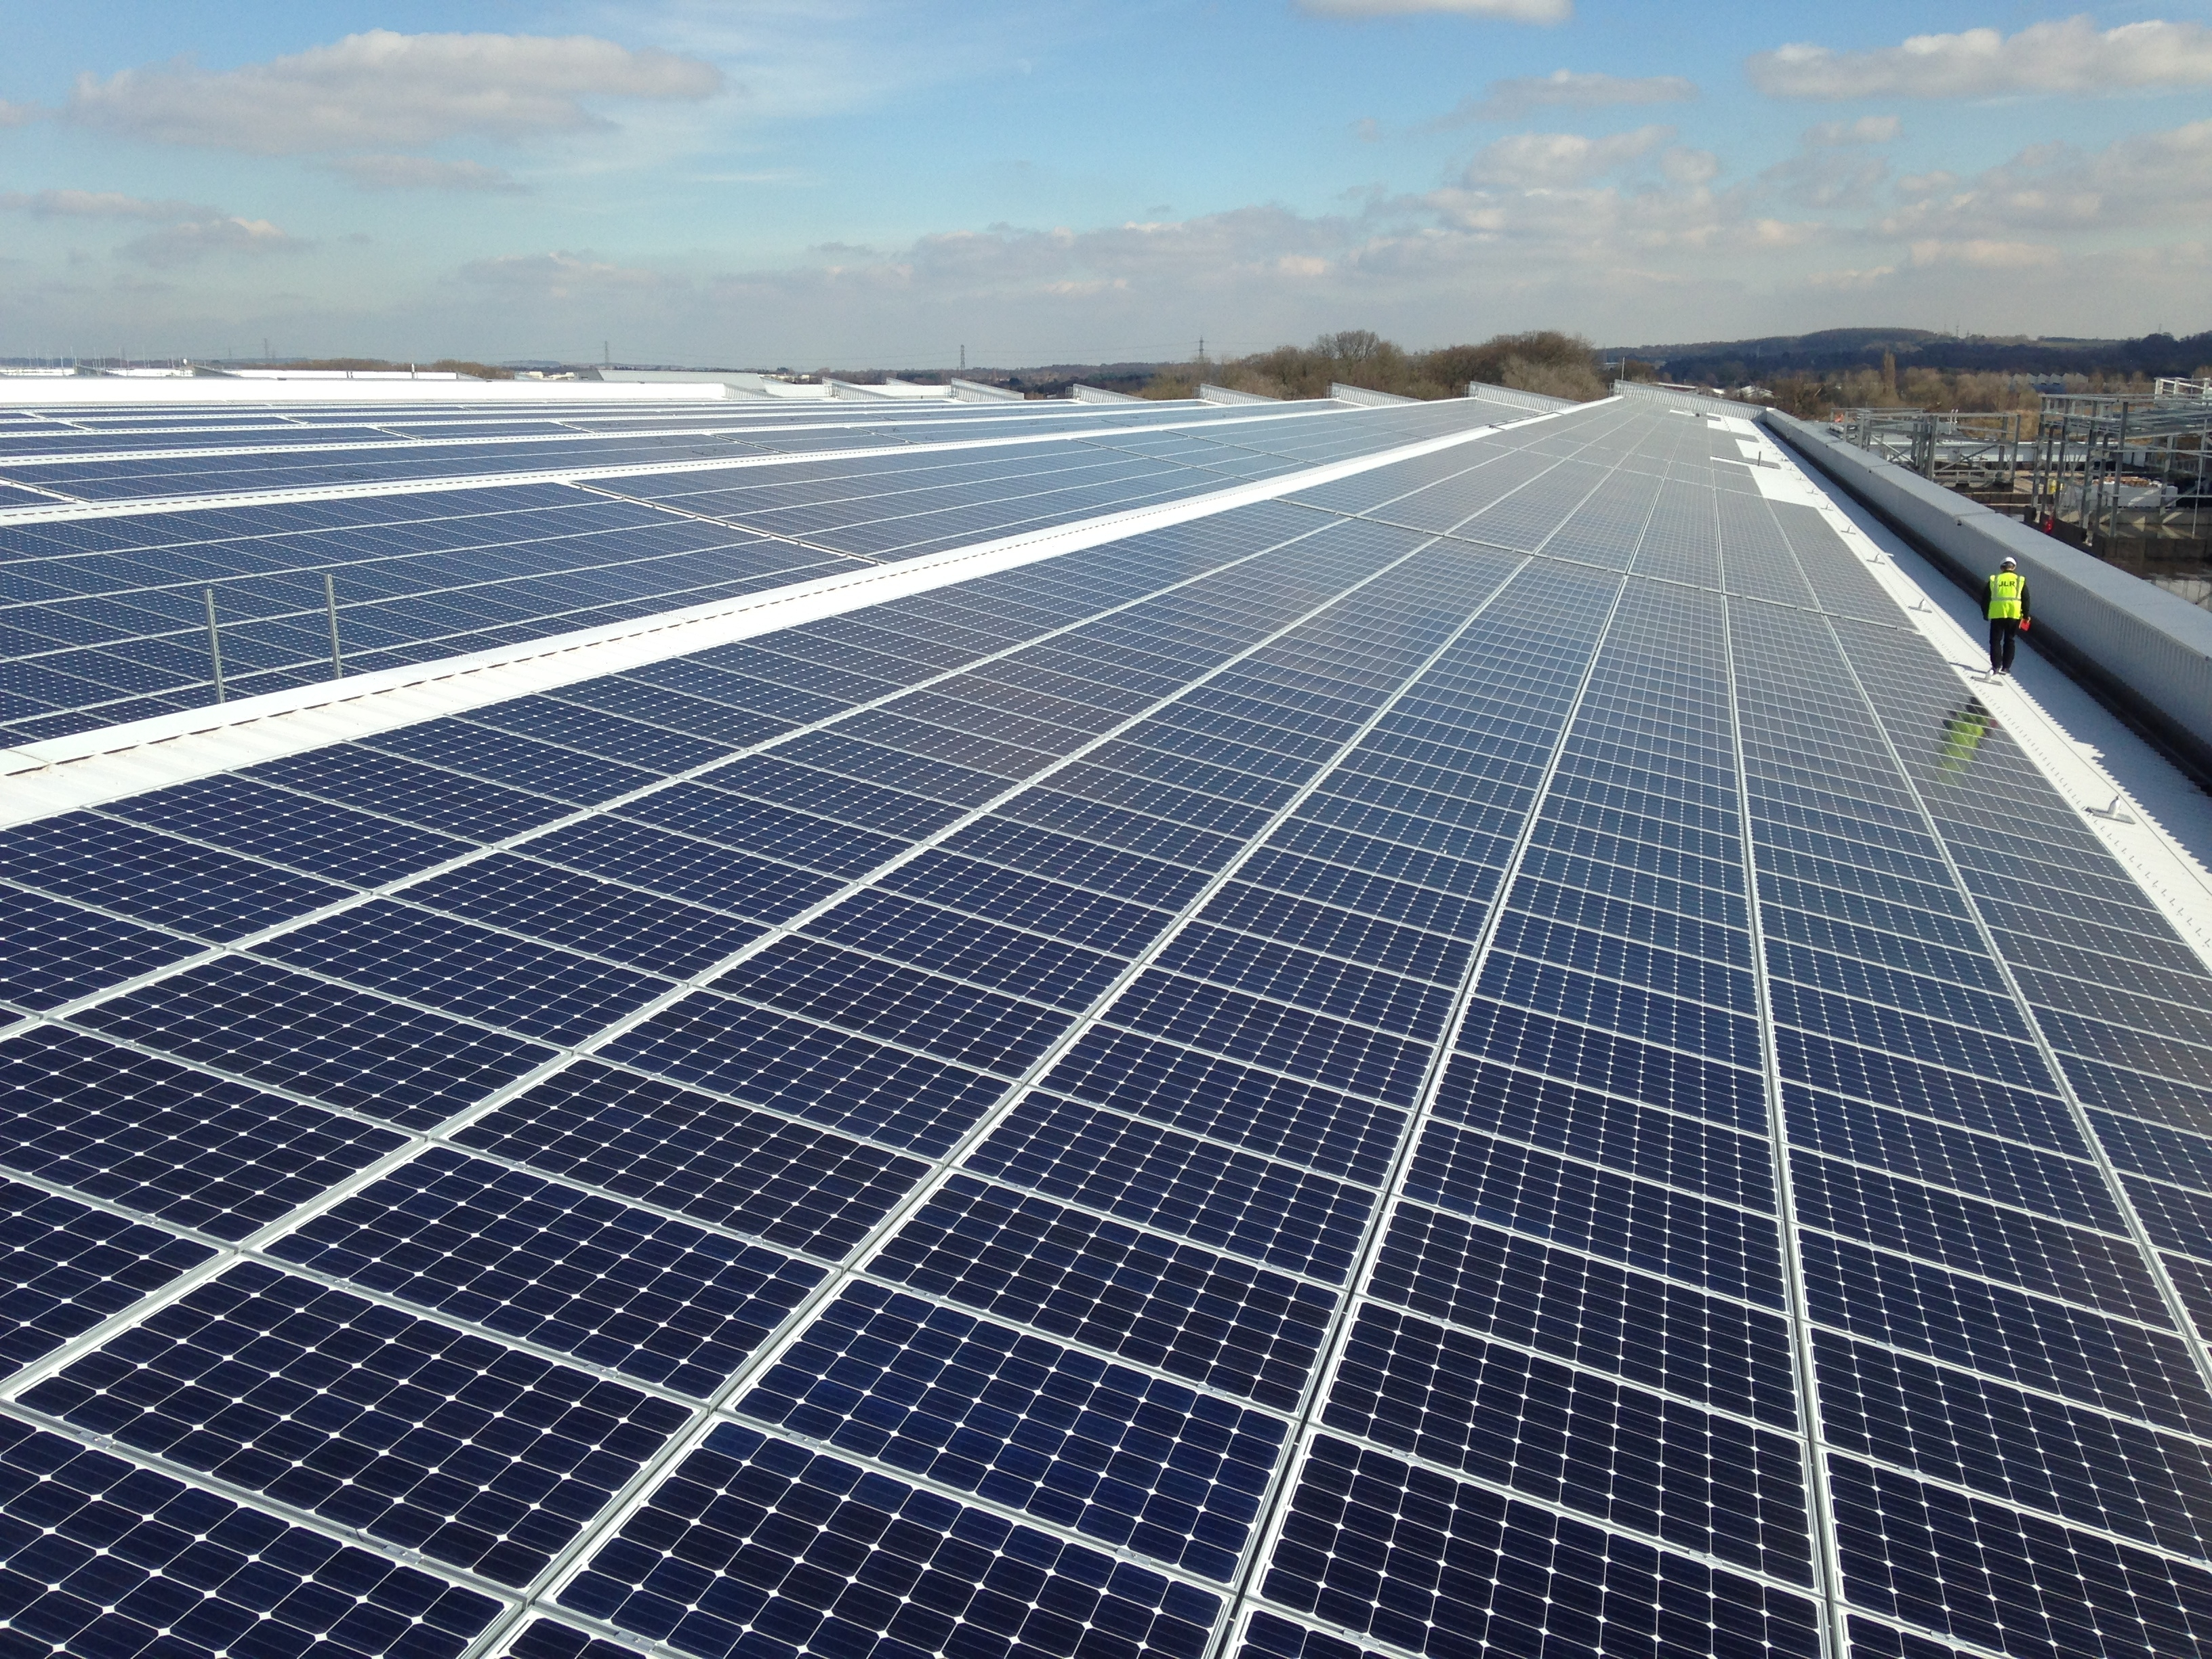 Jag Land Rover Have Just Installed The Uks Largest Solar